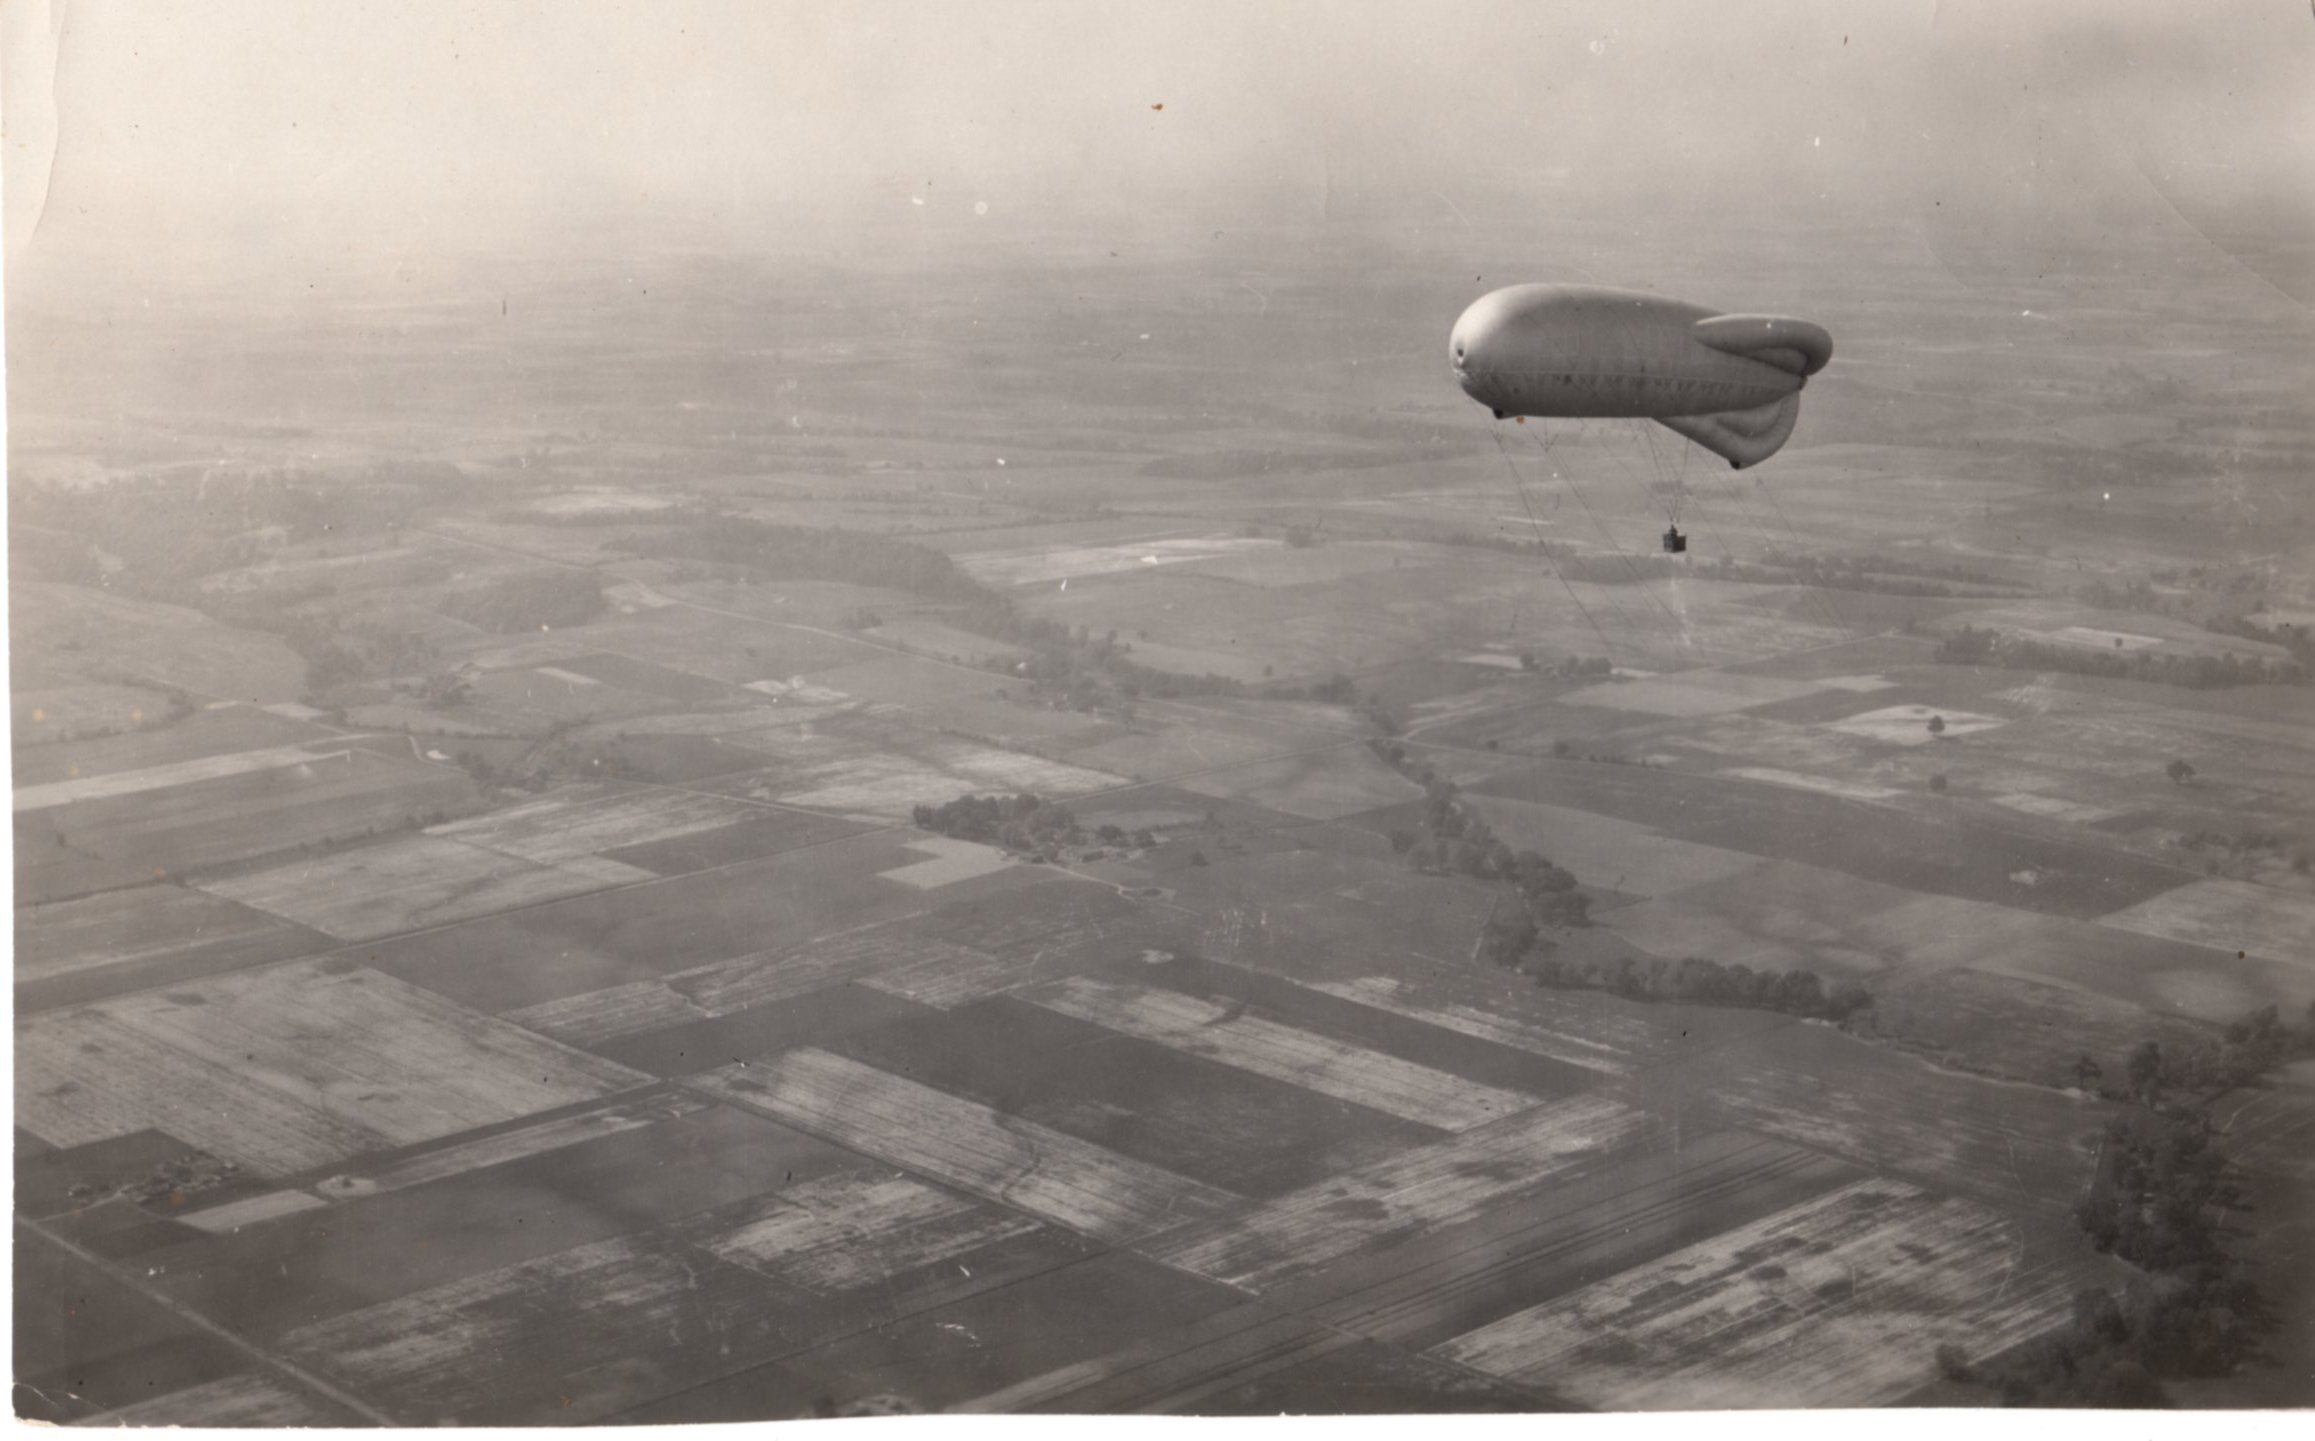 Observation Balloon, Scott Field, 1925